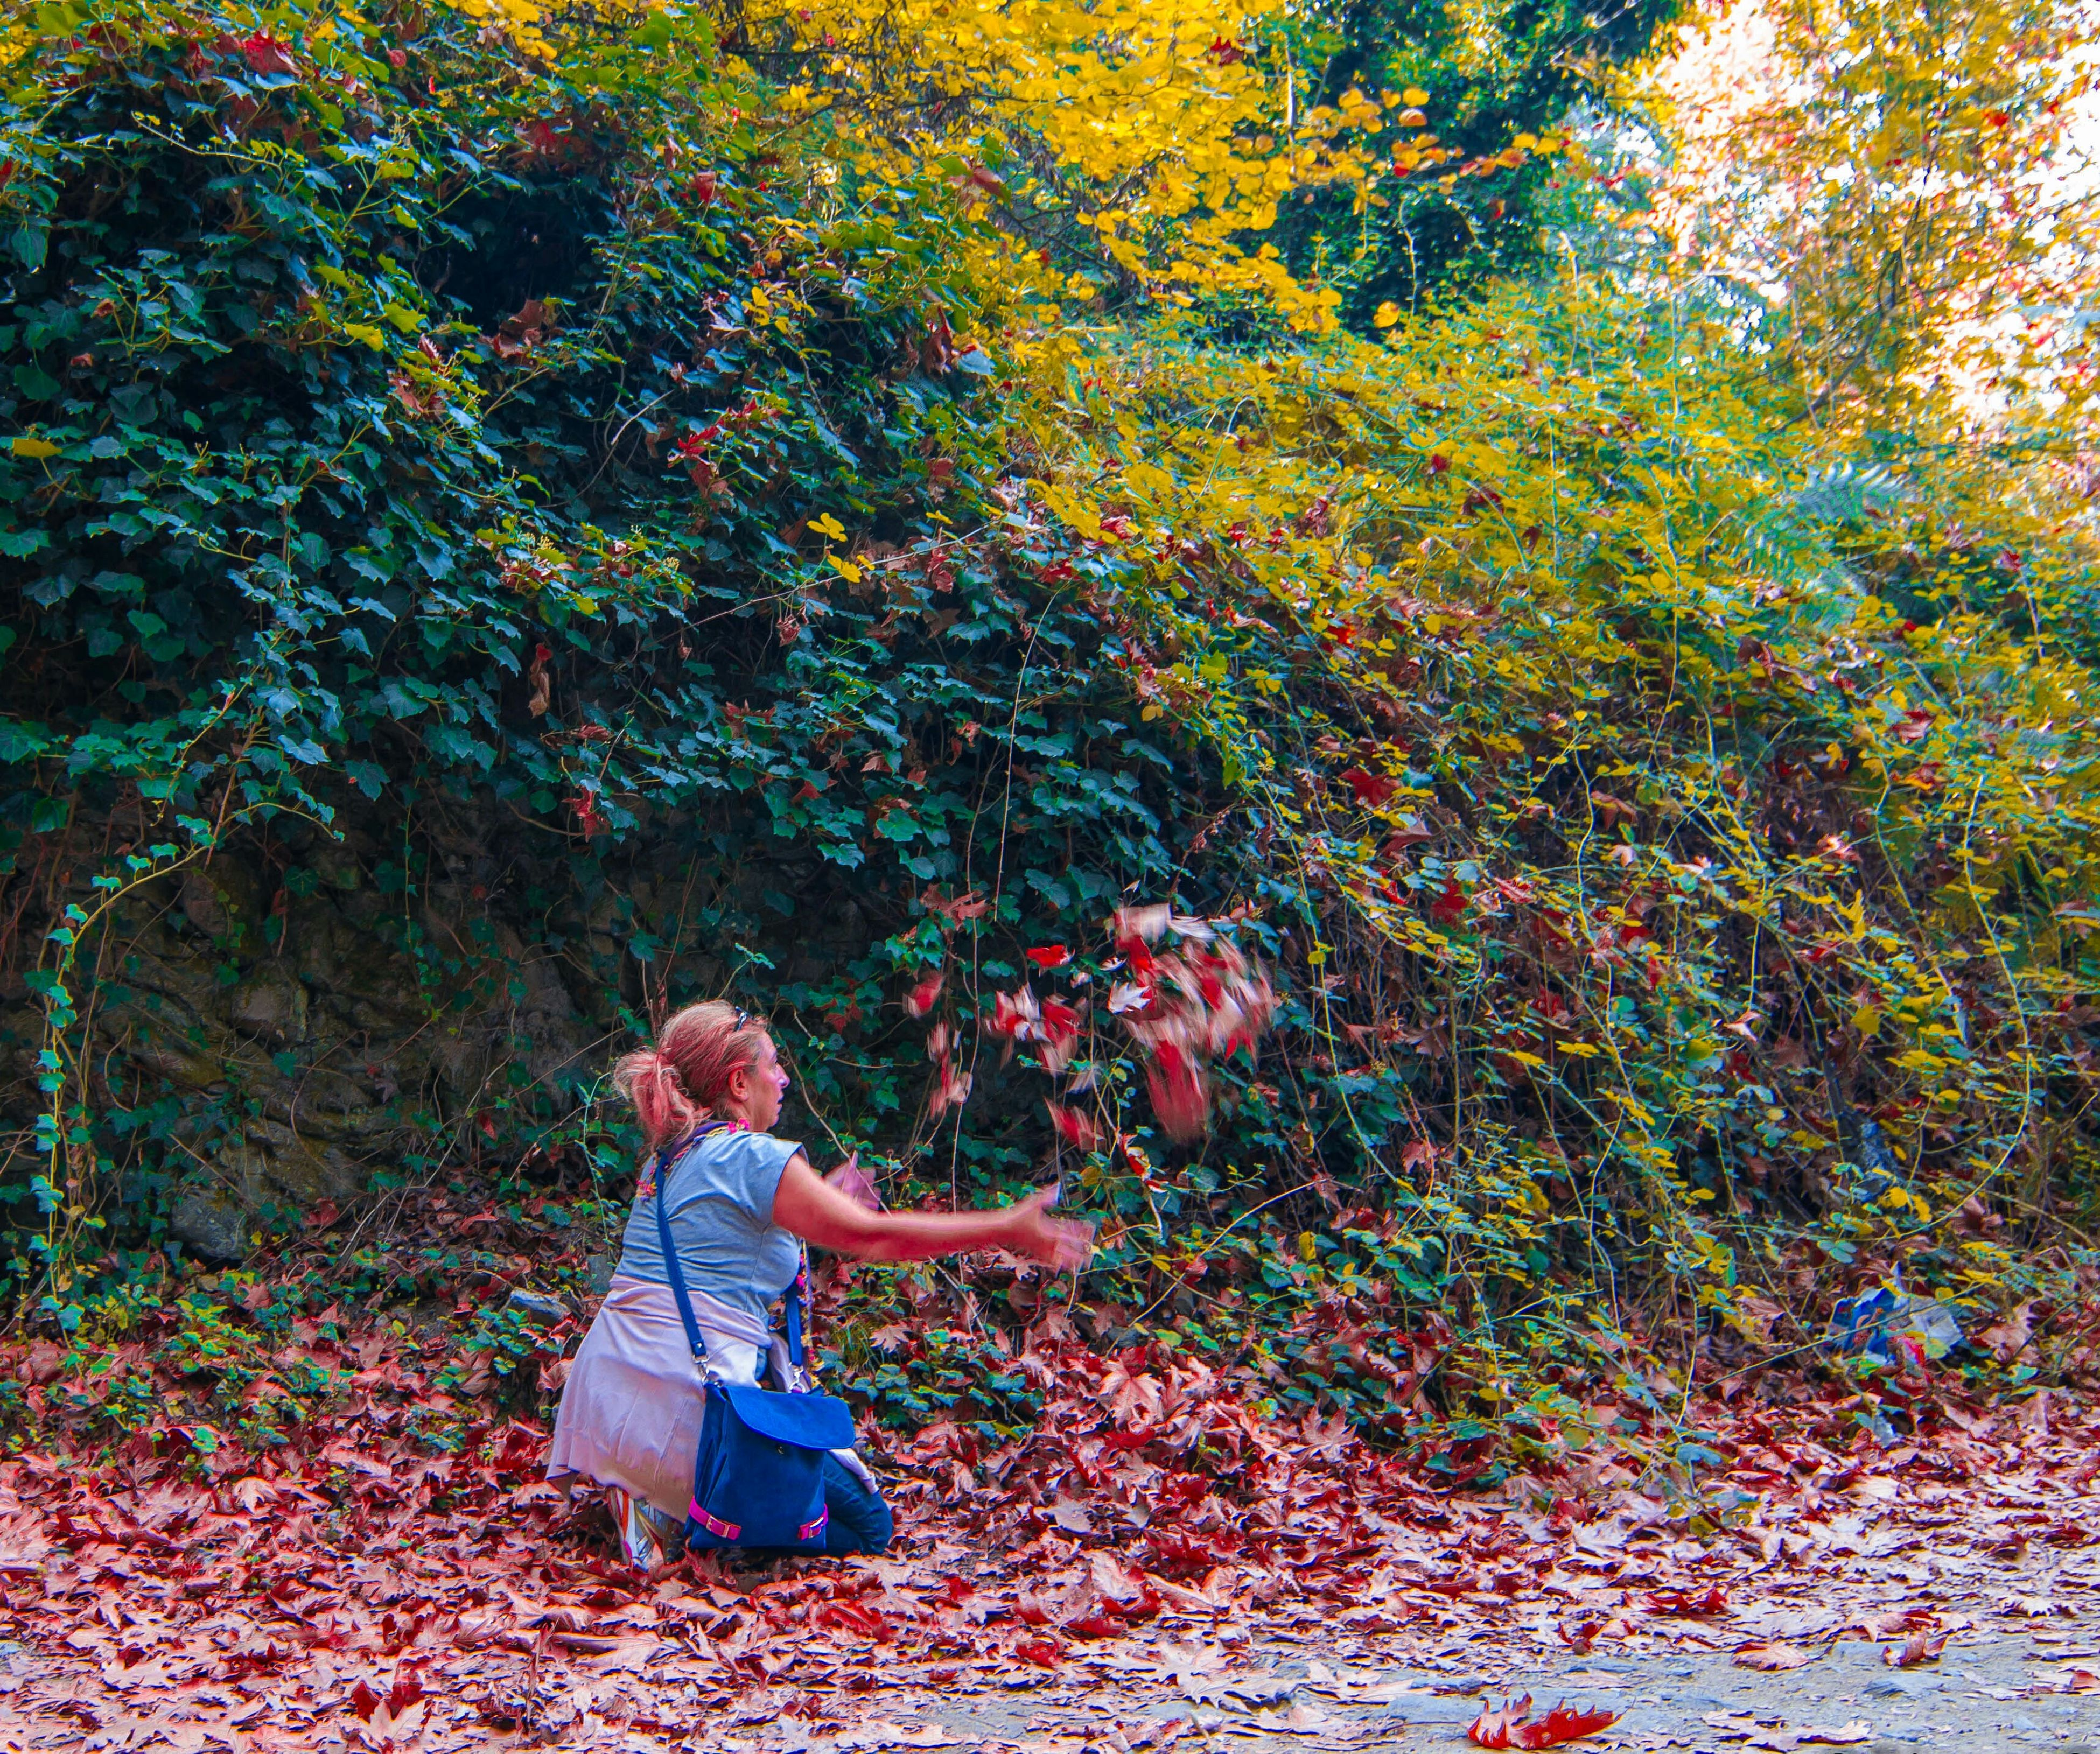 autumn, leaf, change, growth, tree, nature, plant, season, fallen, tranquility, park - man made space, beauty in nature, flower, day, orange color, outdoors, red, yellow, field, branch